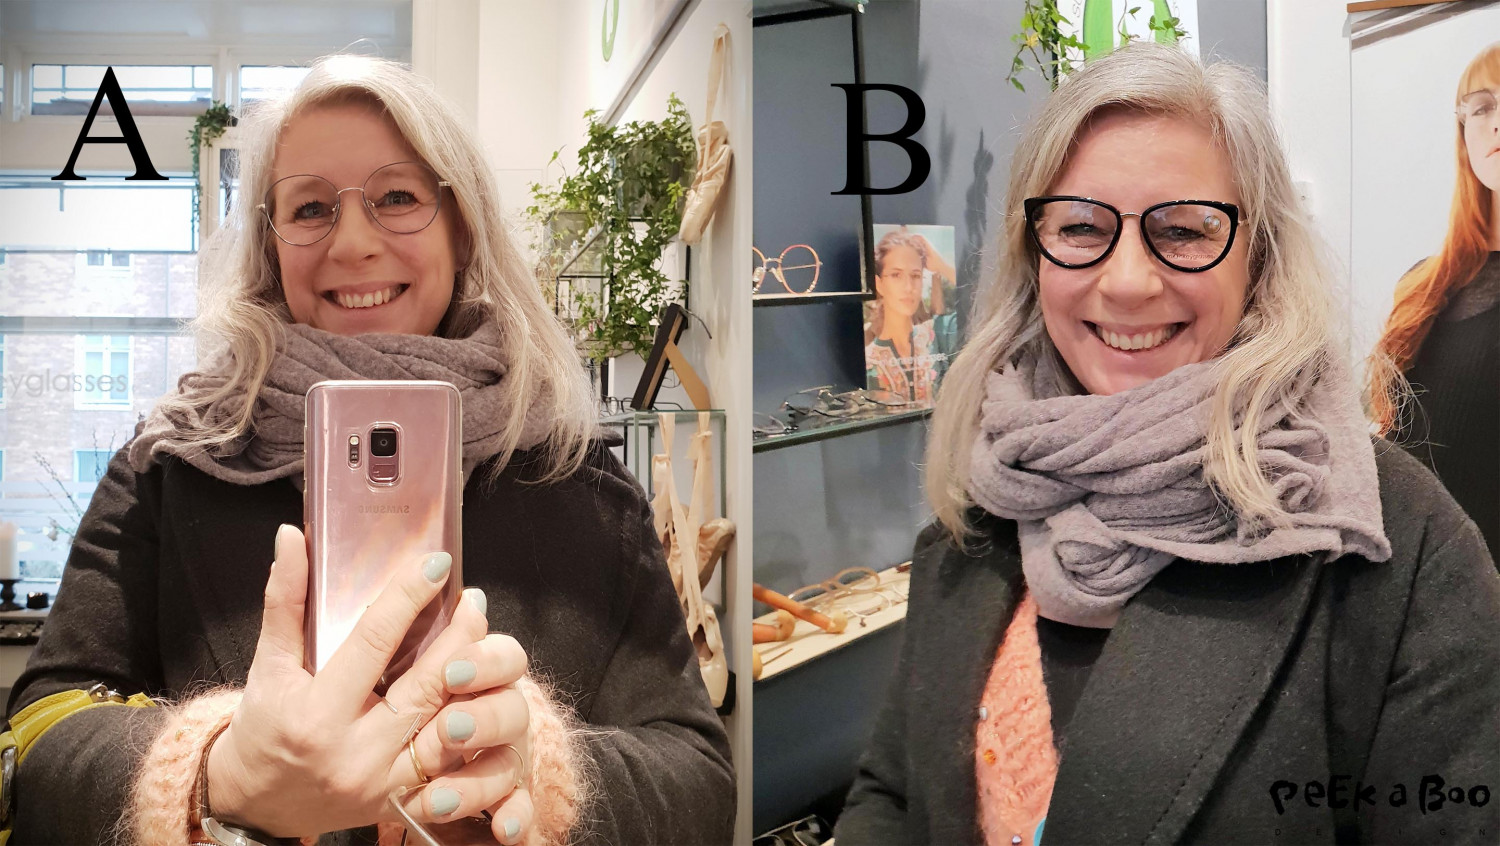 I tried the new collection, and fell in love with these two frames...which one do you prefere?